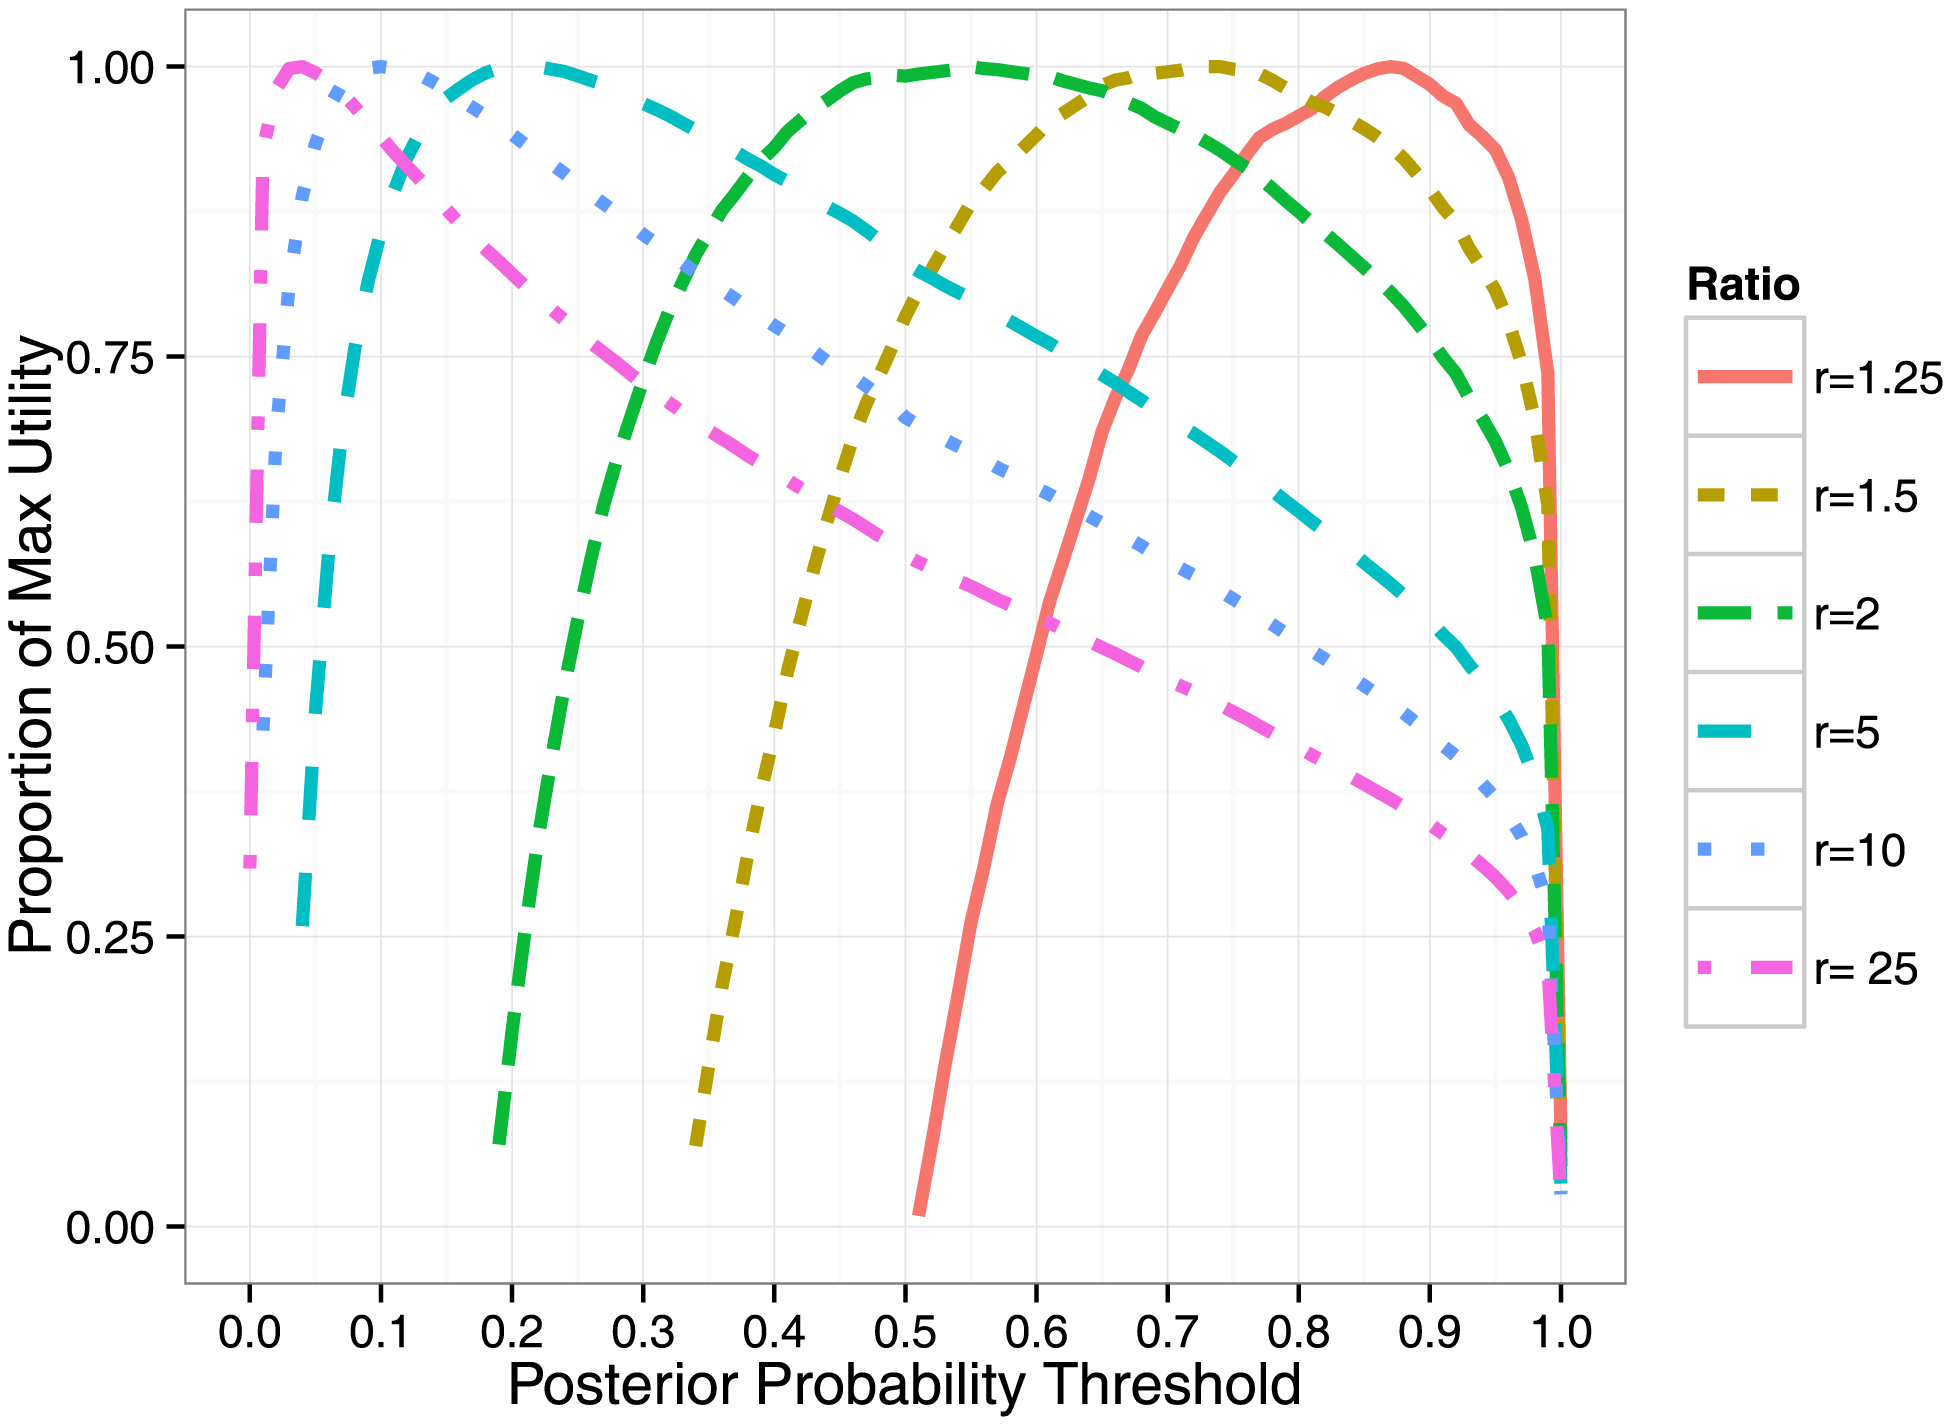 Thresholding on posterior probabilities provides a principled way to assess utility.